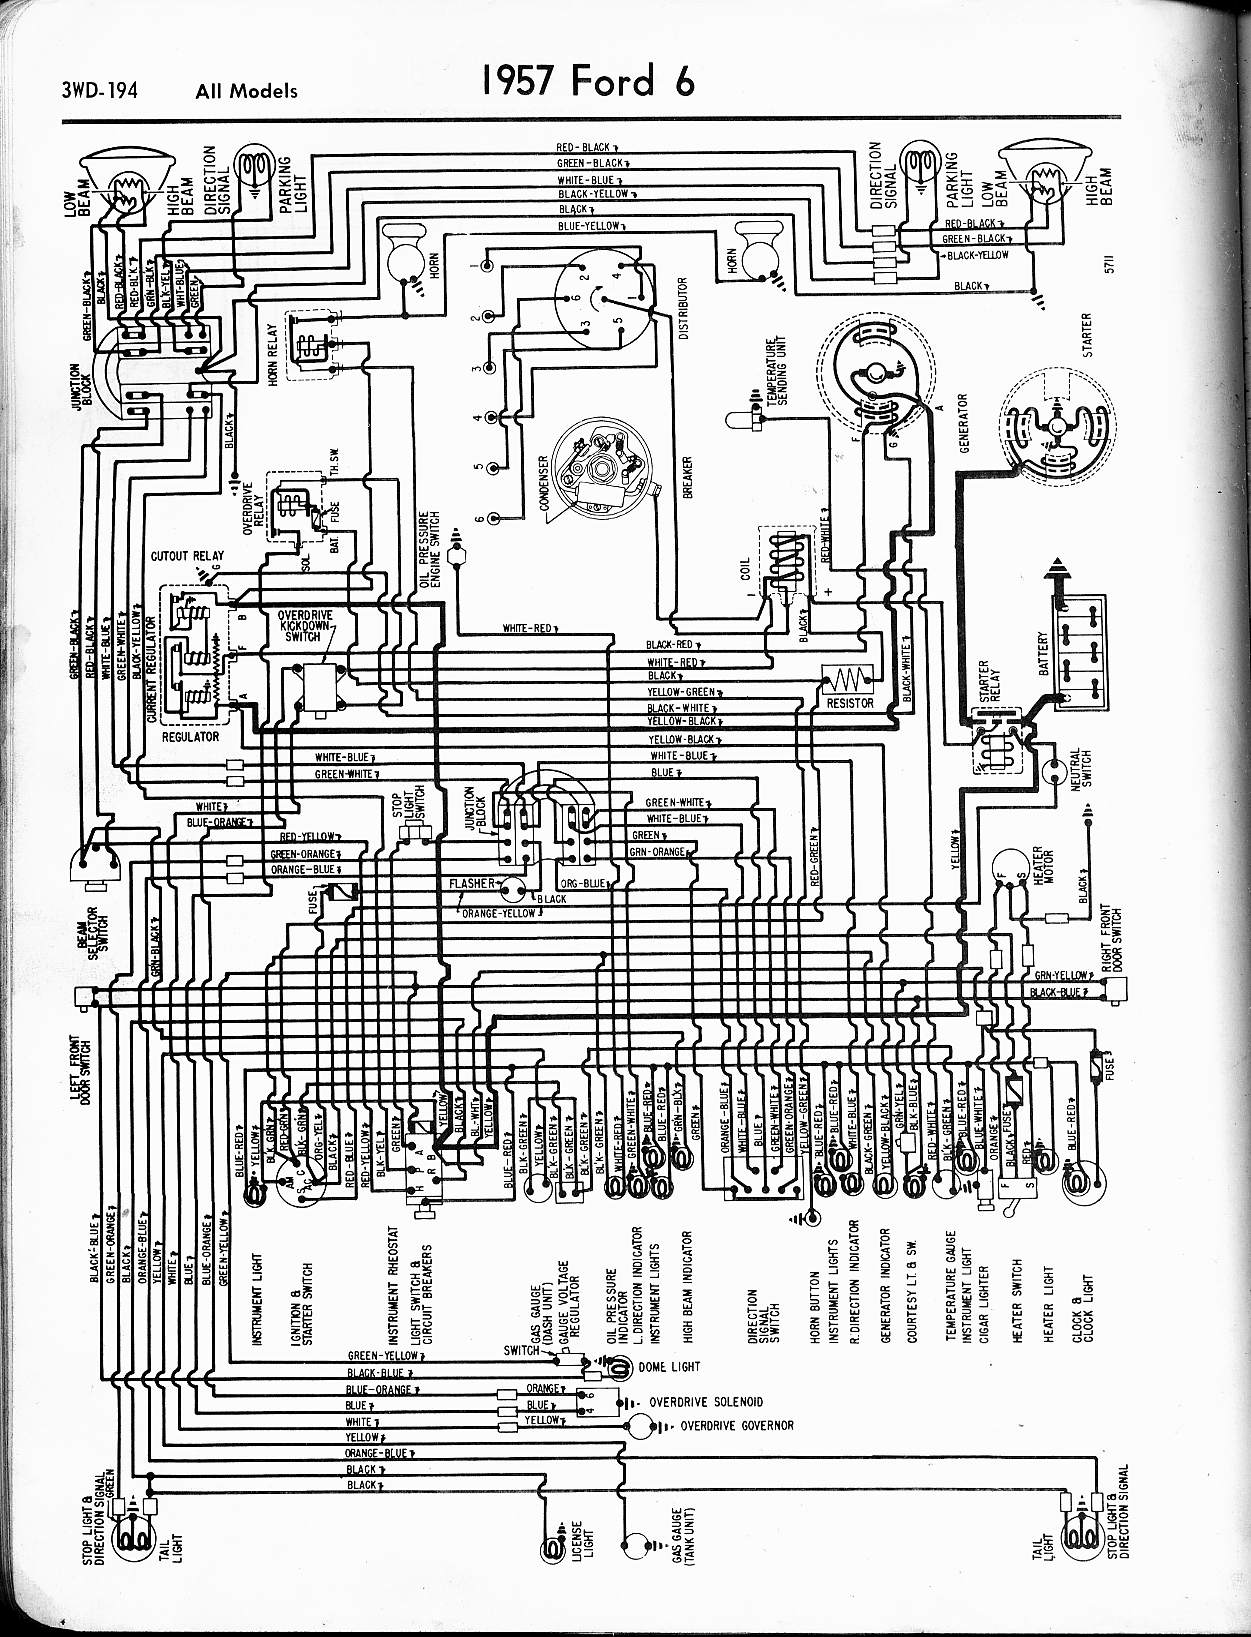 Ford Diagrams Voltage Regulator Wiring Diagram 1986 F 350 Alternator System With A Light Figure And Such 57 Drawing